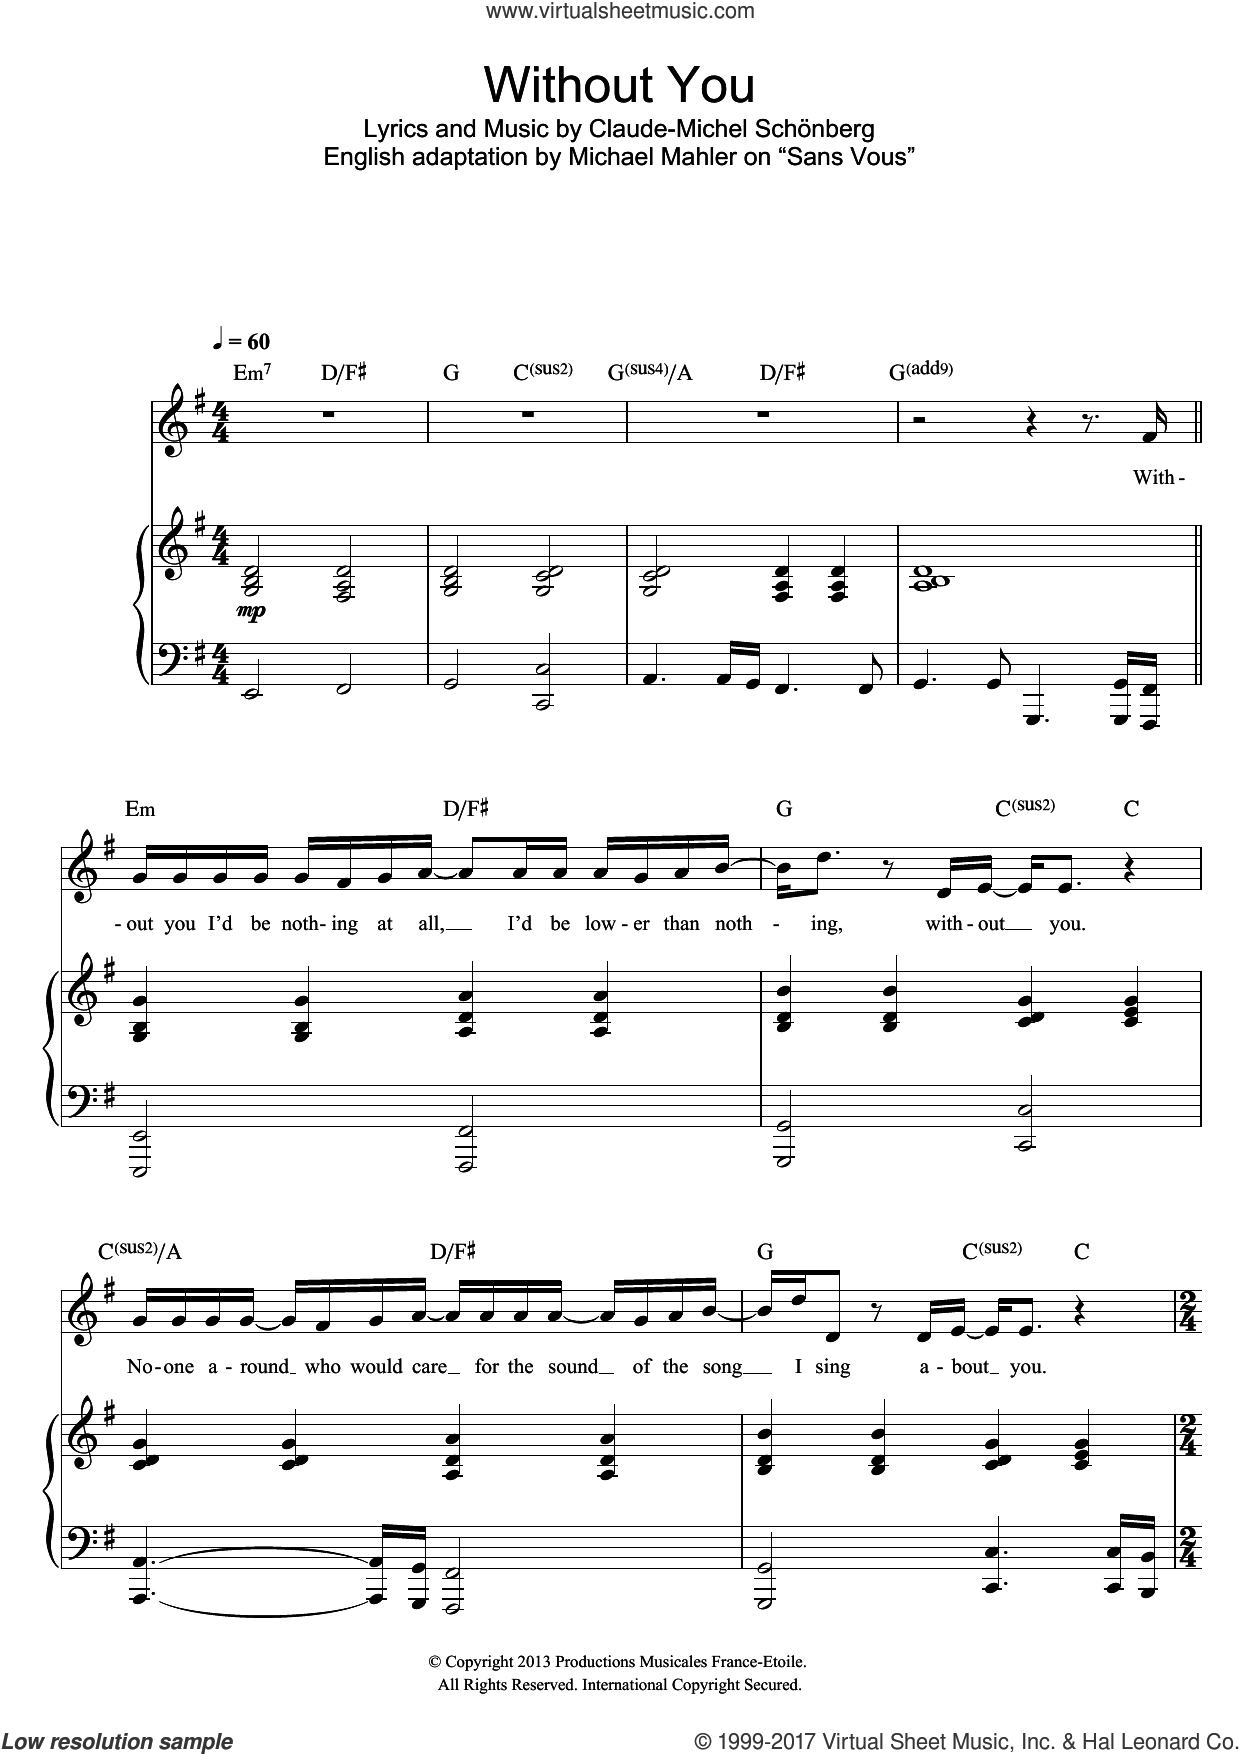 Without You sheet music for voice and piano by Russell Watson, Claude-Michel Schonberg and Michael Mahler, classical score, intermediate skill level